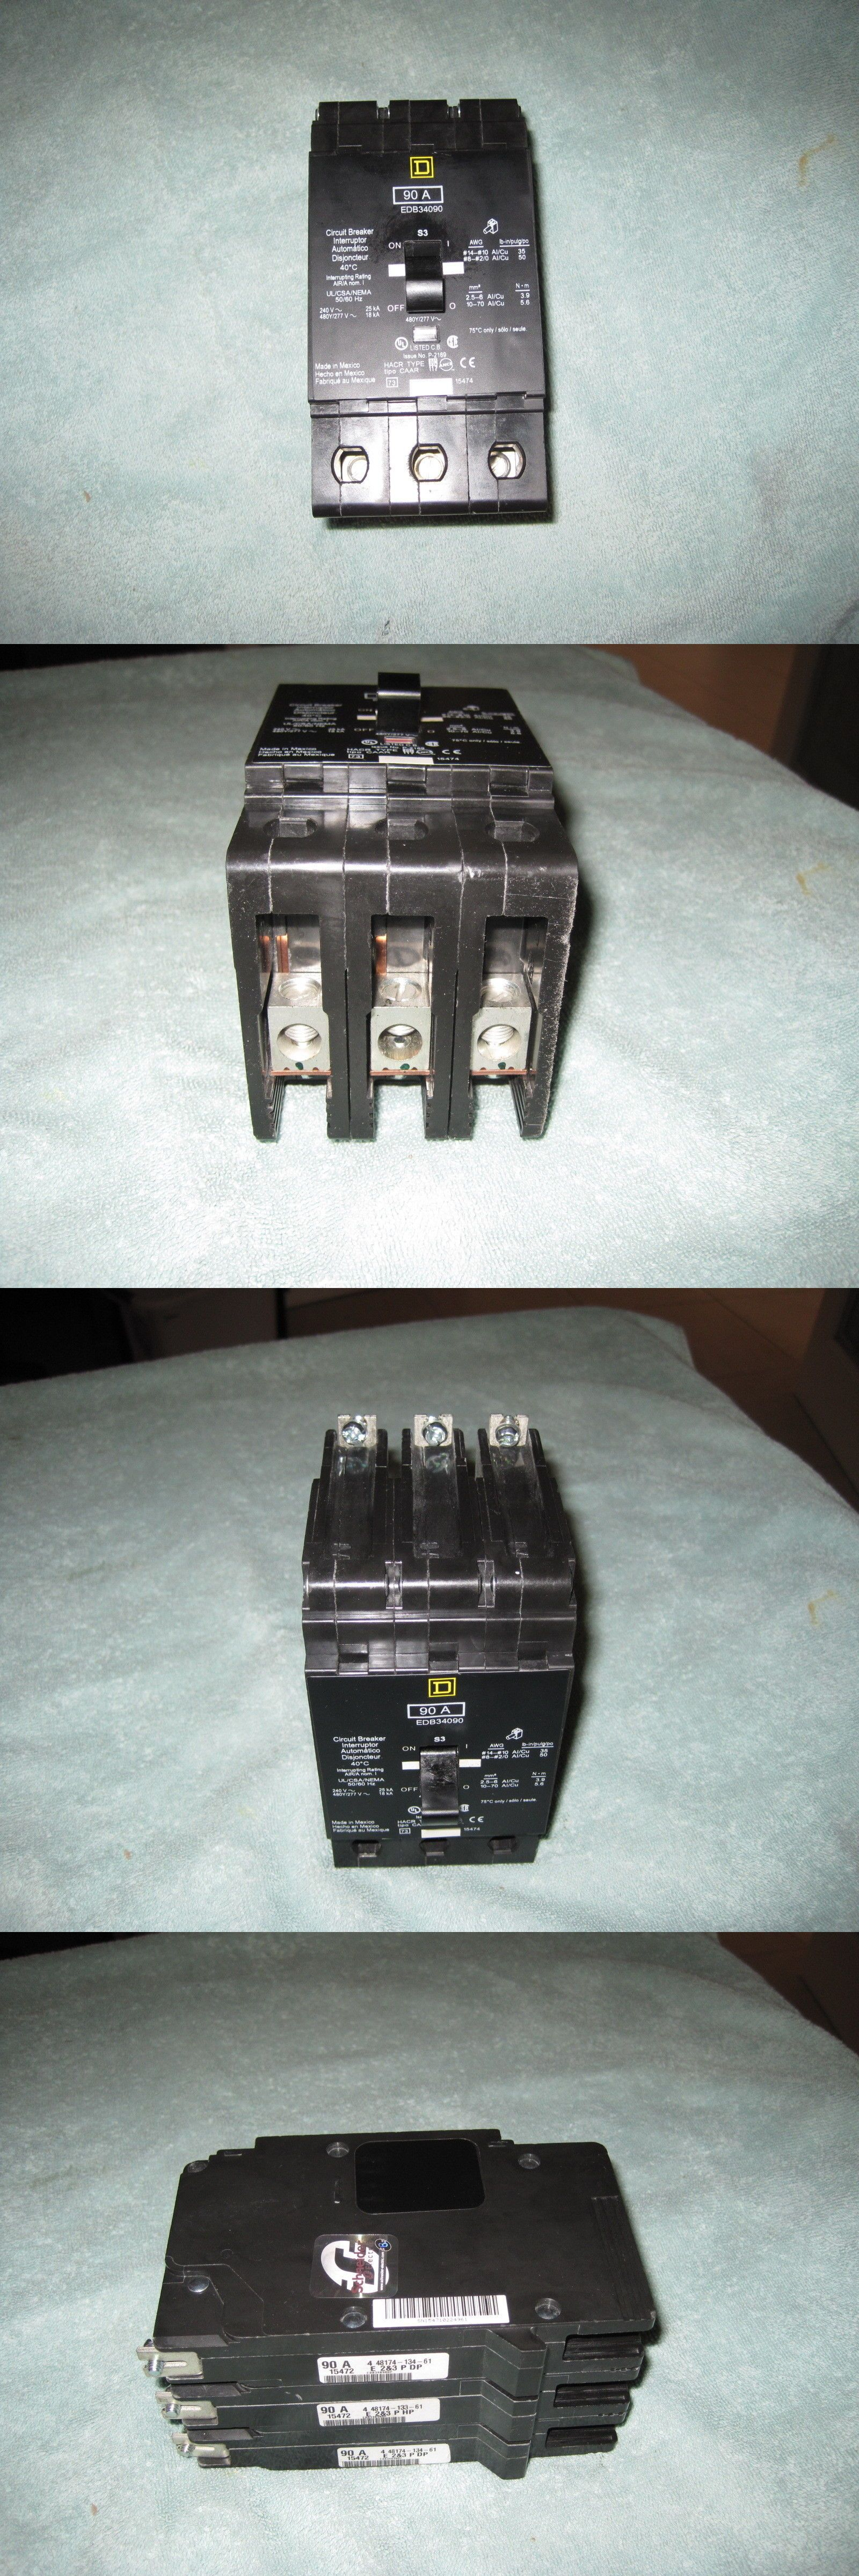 small resolution of circuit breakers and fuse boxes 20596 square d edb34090 circuit breaker 3 pole 90 amp 480 volt buy it now only 159 95 on ebay circuit breakers